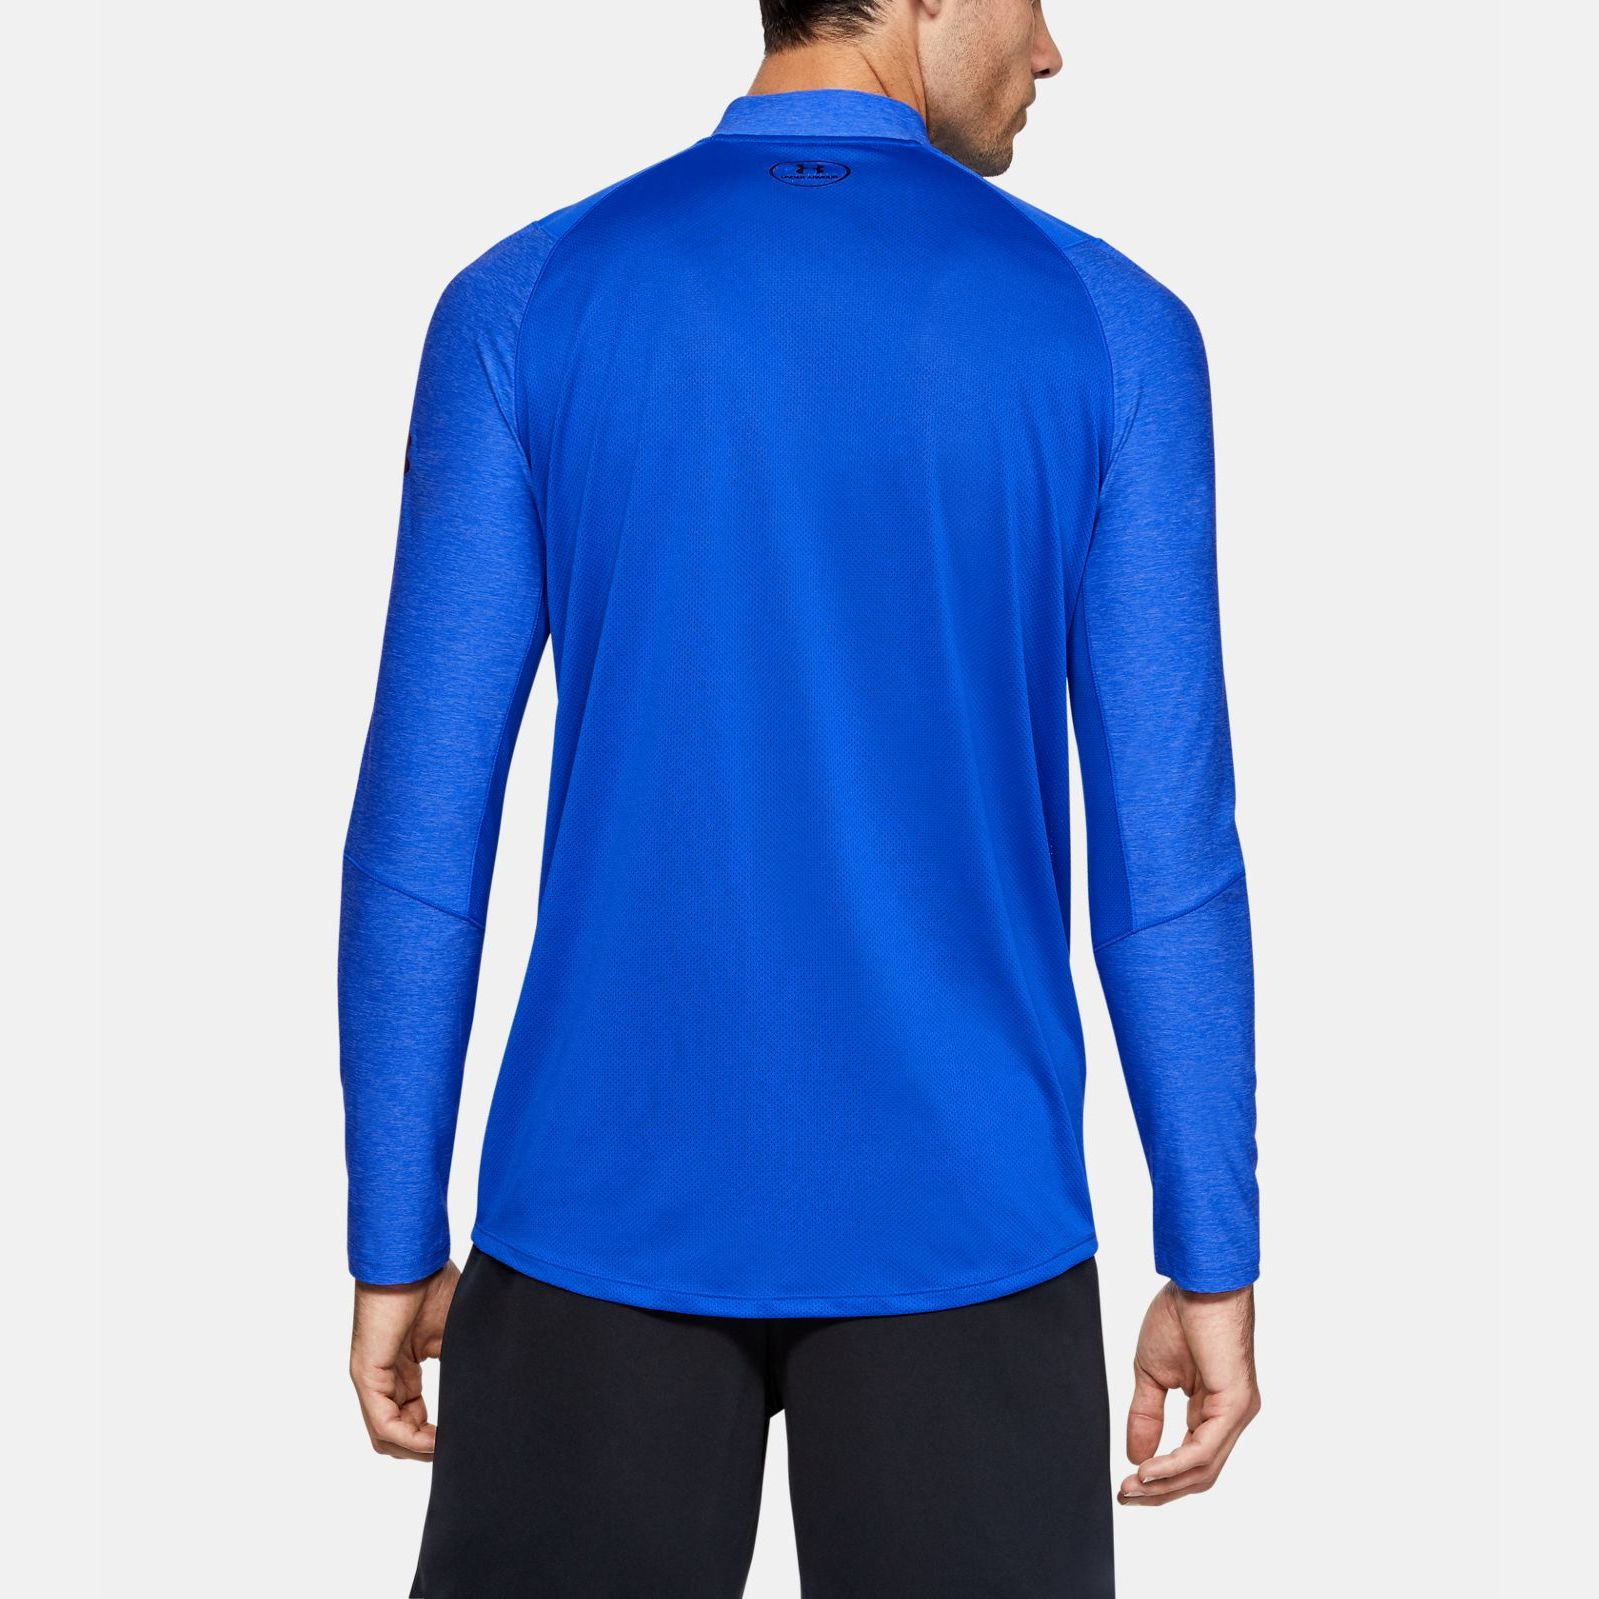 Clothing -  under armour MK-1 1/4 Zip 6430